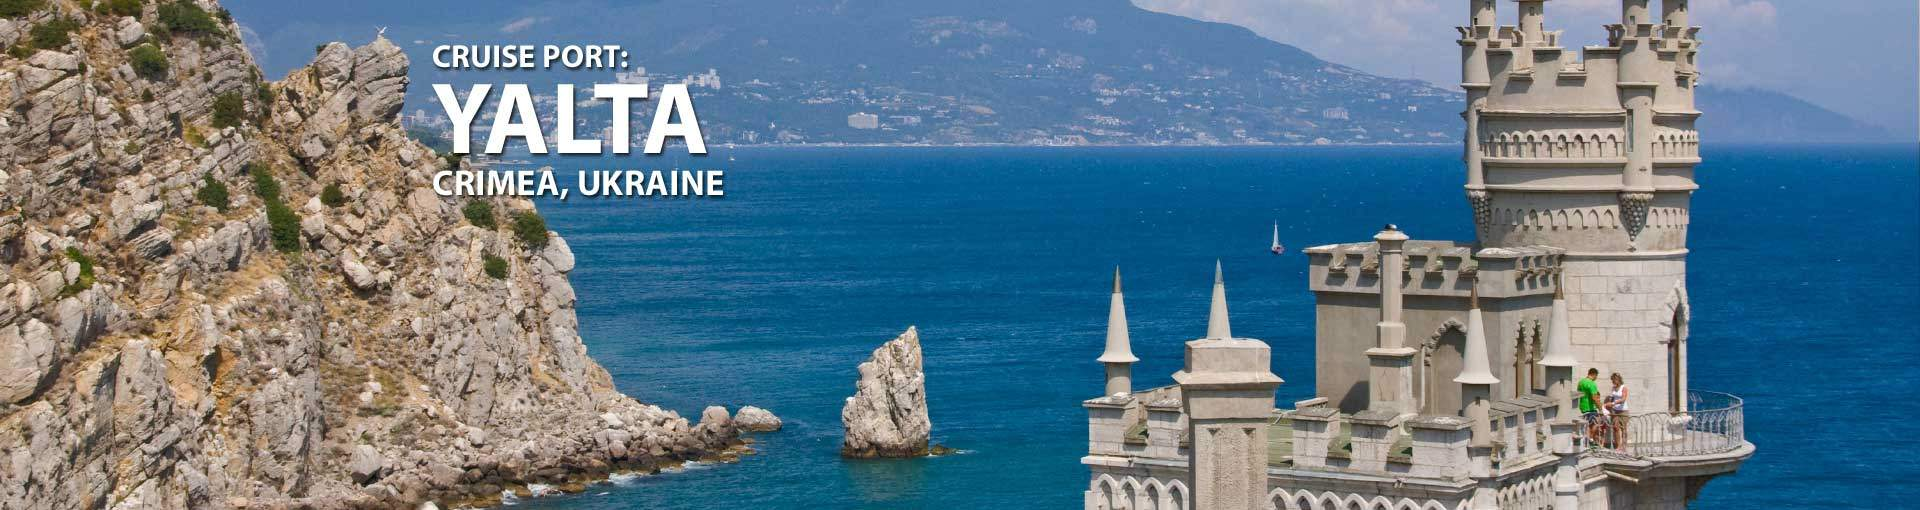 Cruises to Yalta, Crimea, Ukraine